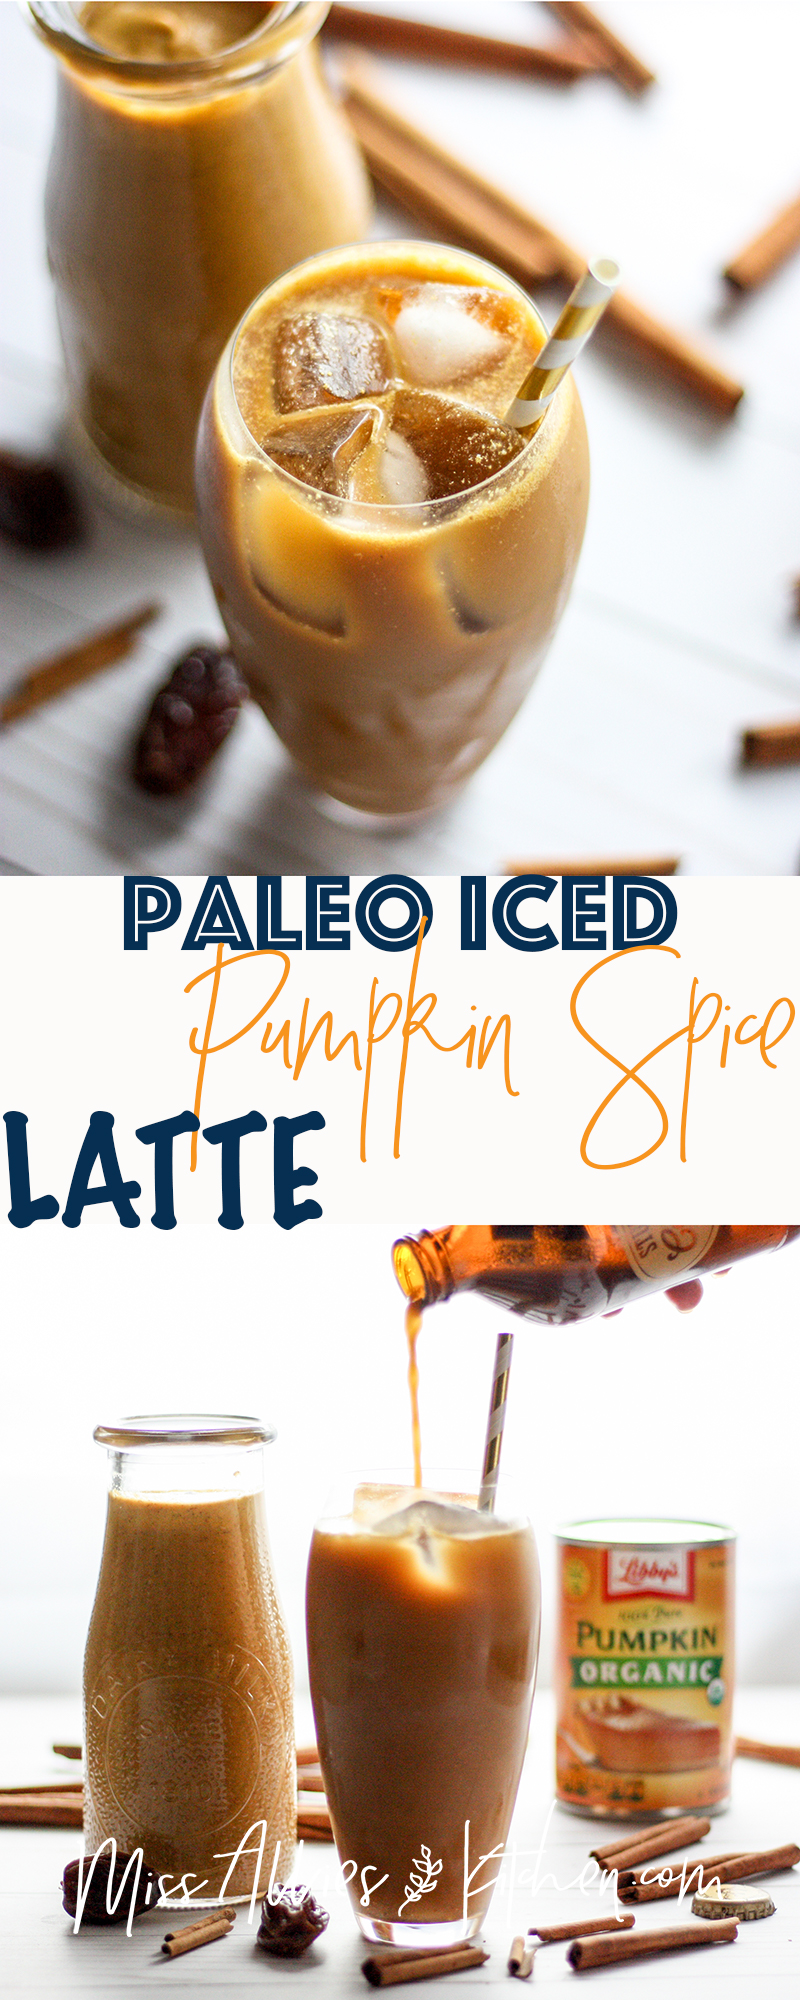 Paleo Iced Pumpkin Spice Latte - get that fall fix without the fancy coffee shop price tag & added crap!